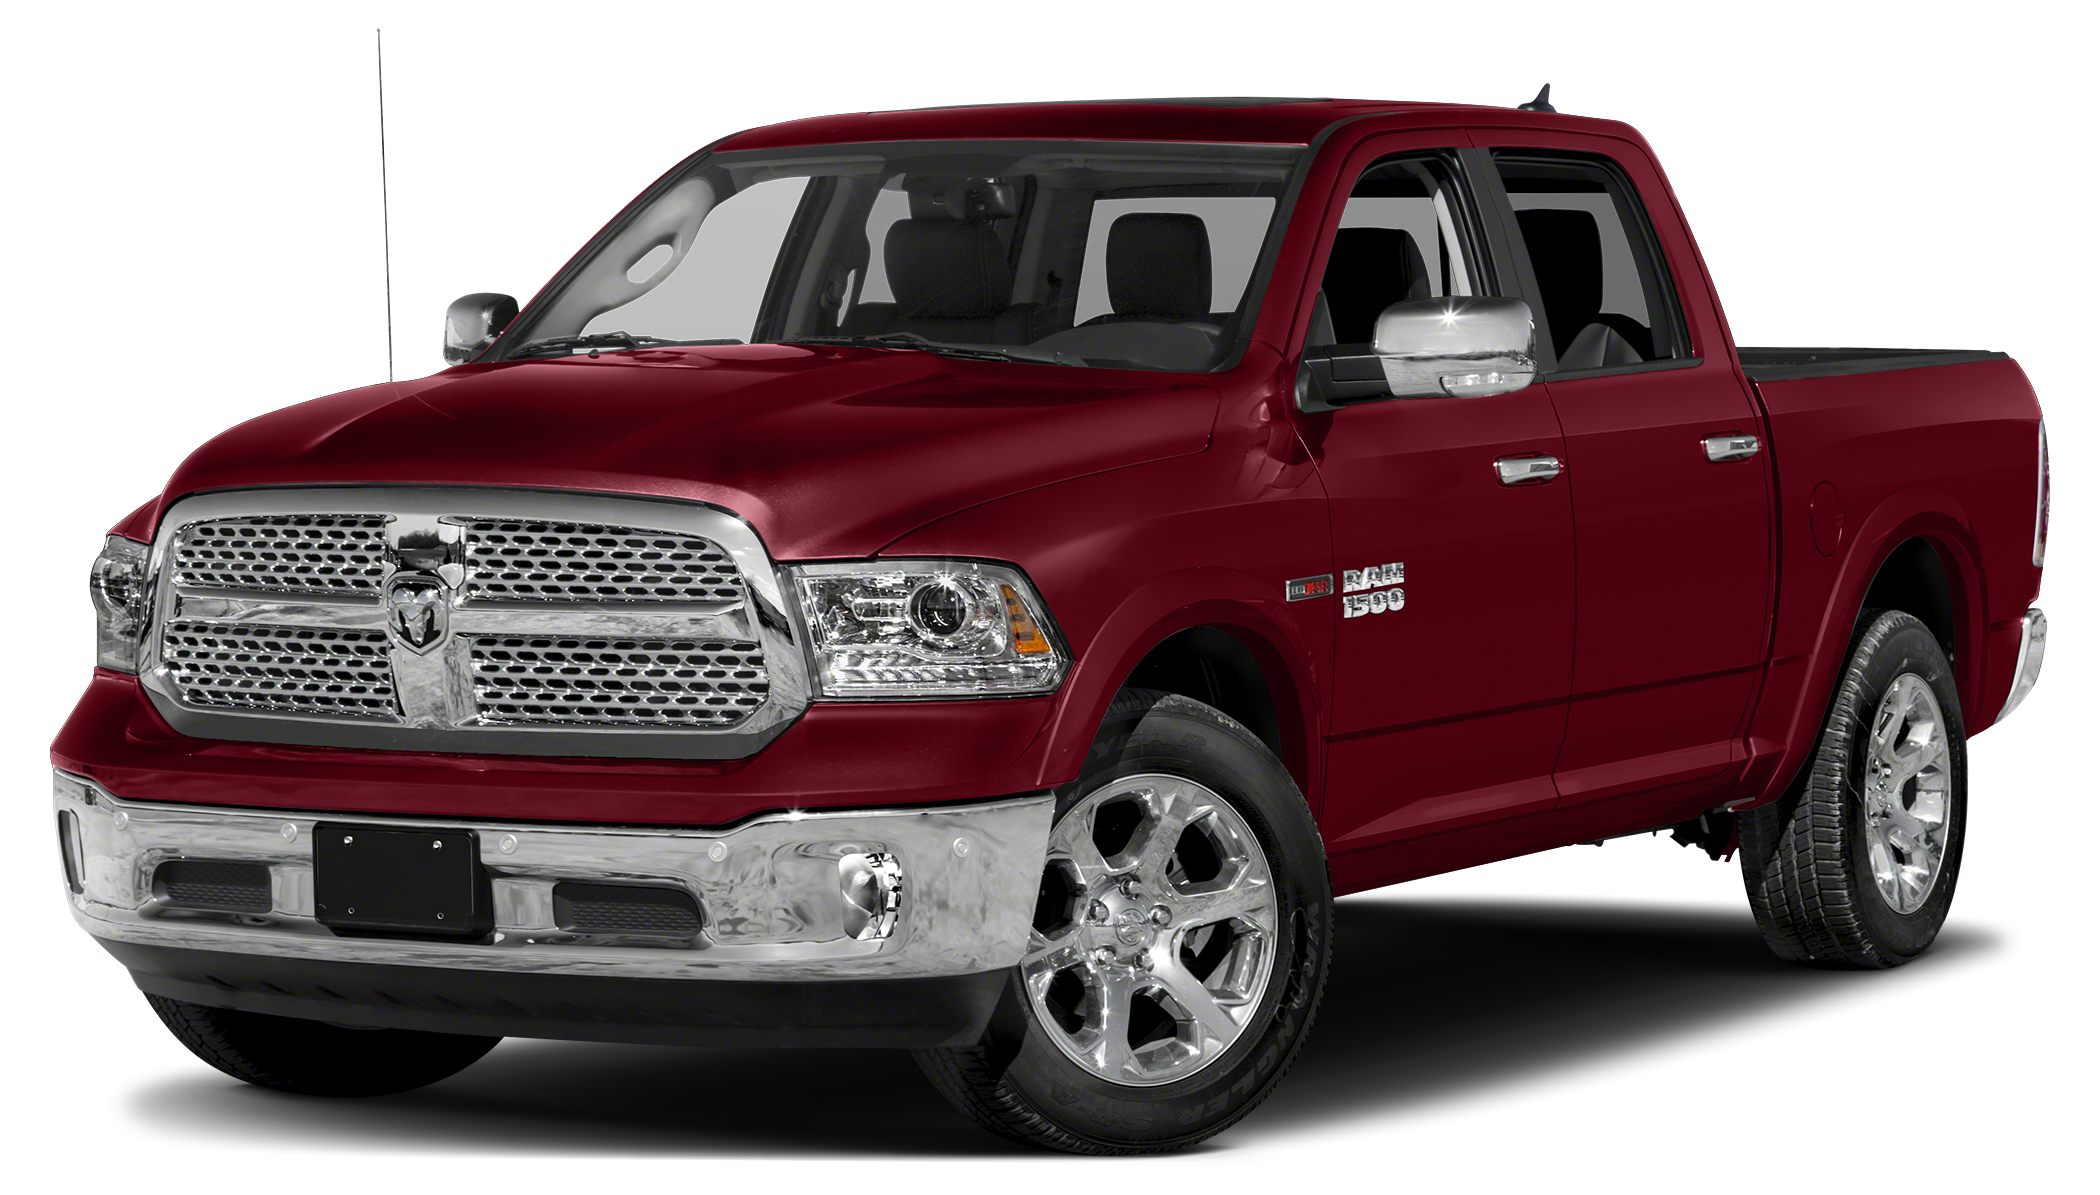 2015 RAM 1500 Laramie Your lucky day At David Stanley Norman Chrysler Jeep Dodge YOURE 1 Fres